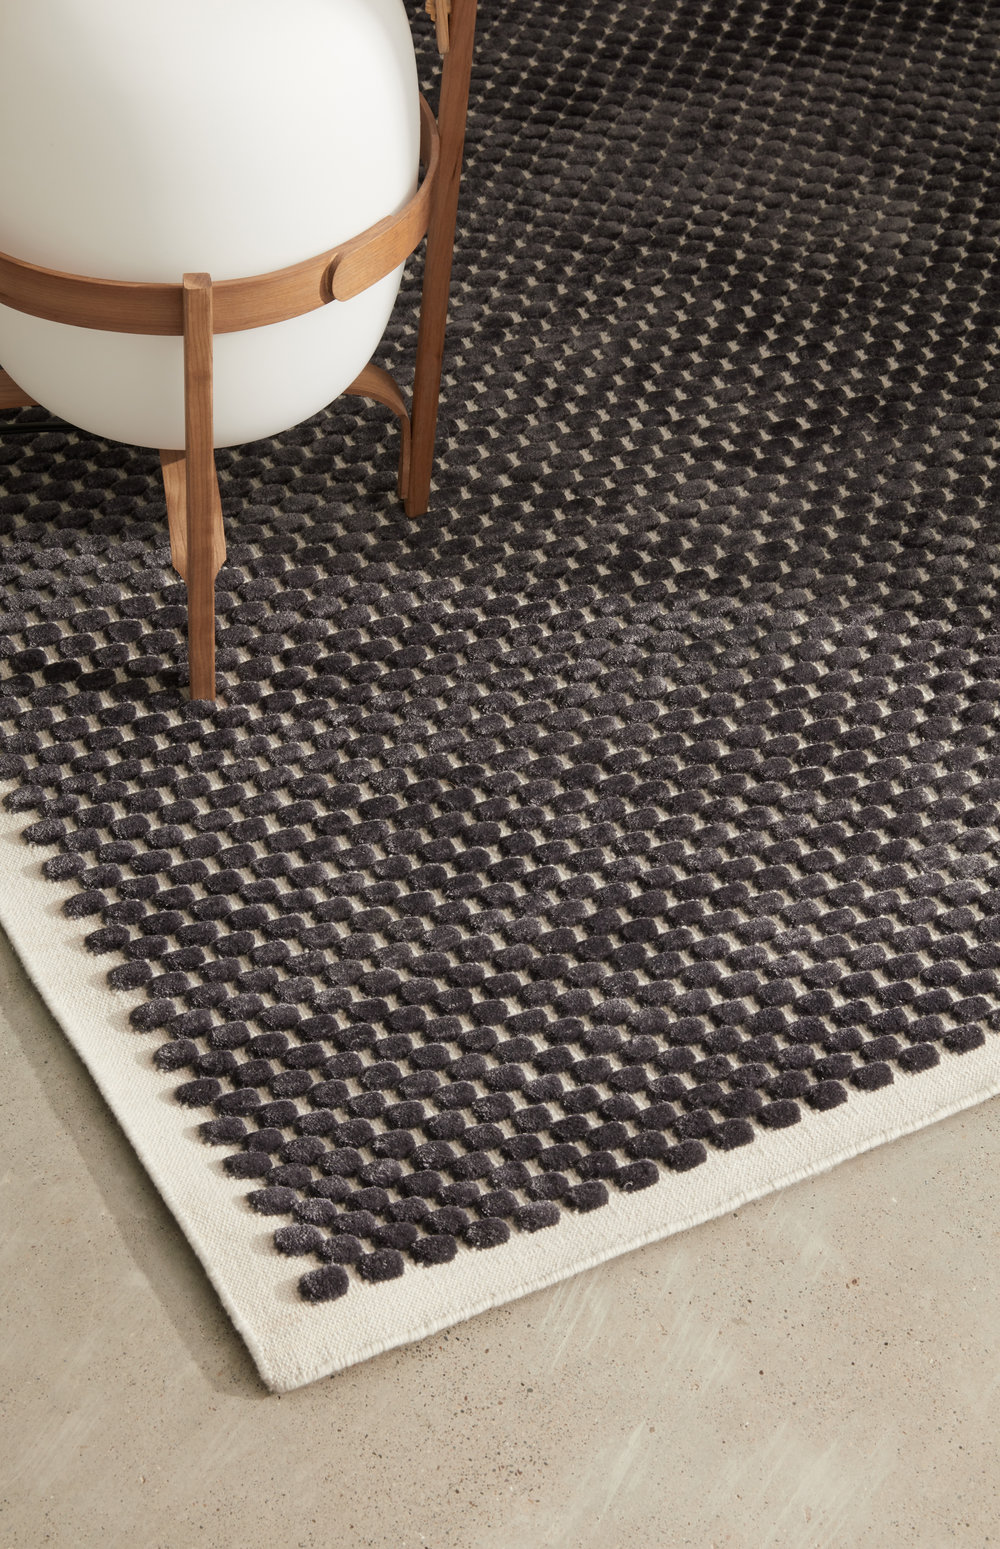 Kupla Area Rug Shown in 100% Cruelty-Free Merino & 100% Silk in Breath and Ink in 5x7 size.